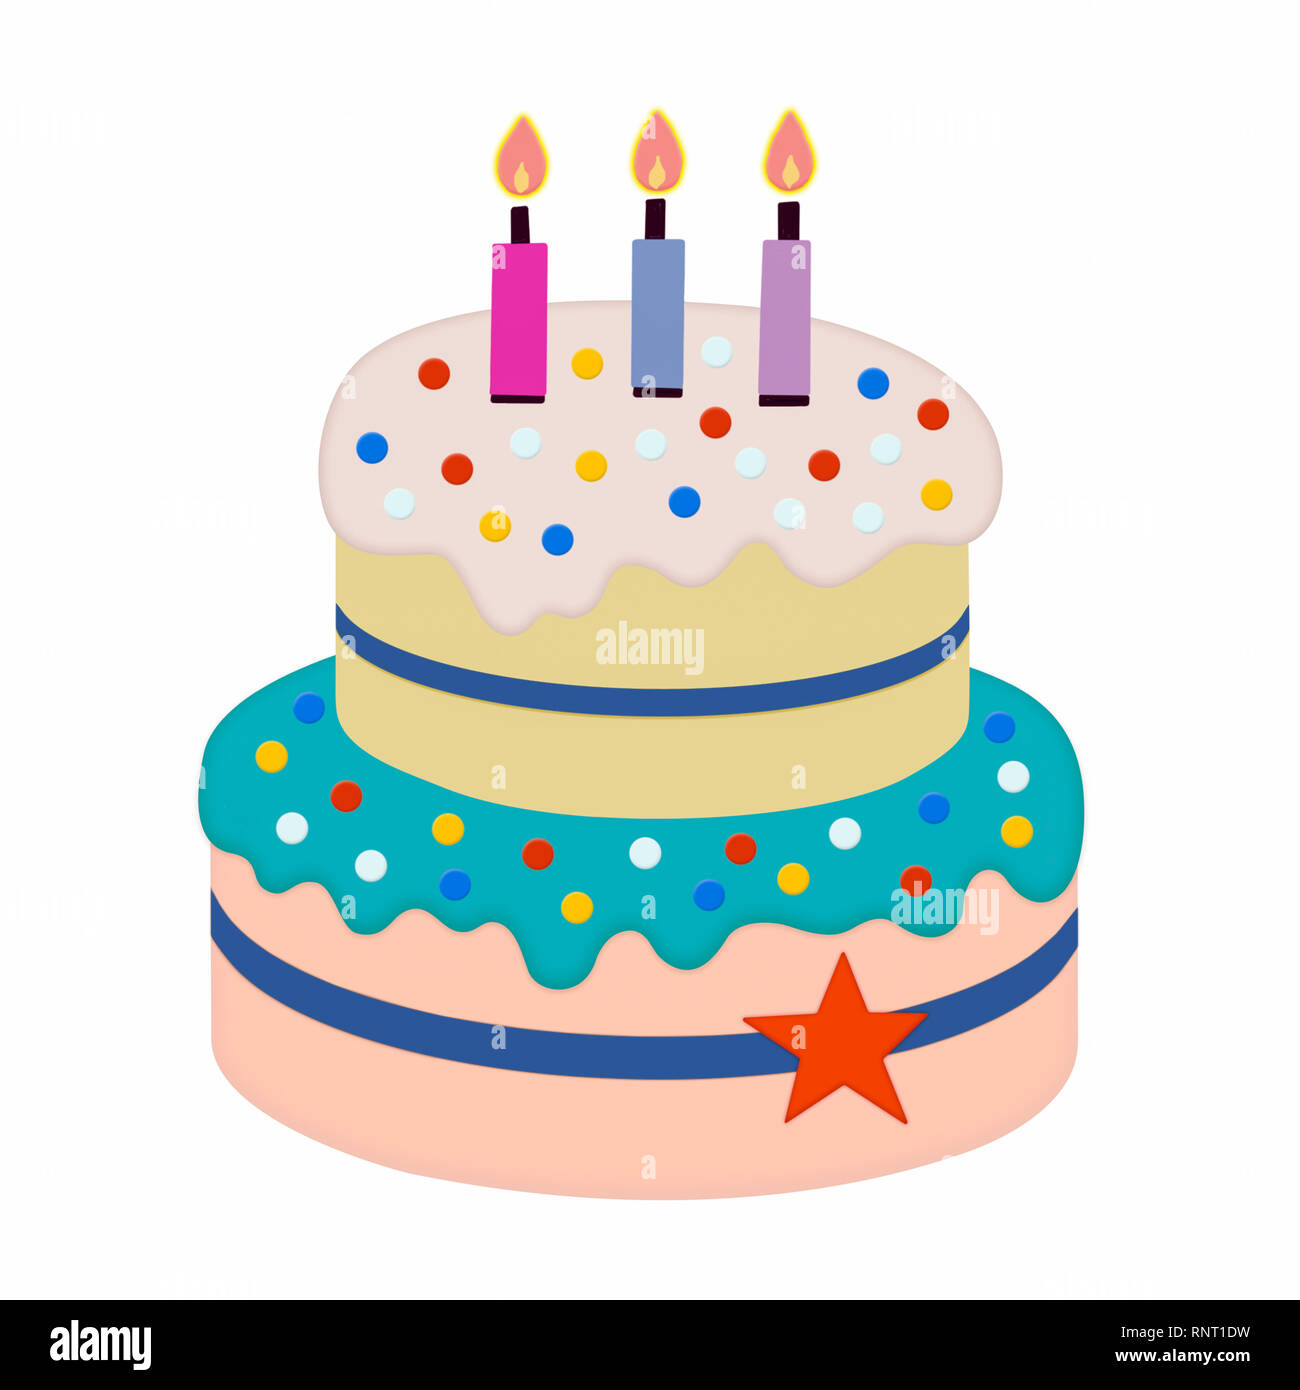 Illustration of a multicoloured two-tier iced birthday cake with three lit candles, ideal for for a menu, confectionery catalogue or party invite - Stock Image